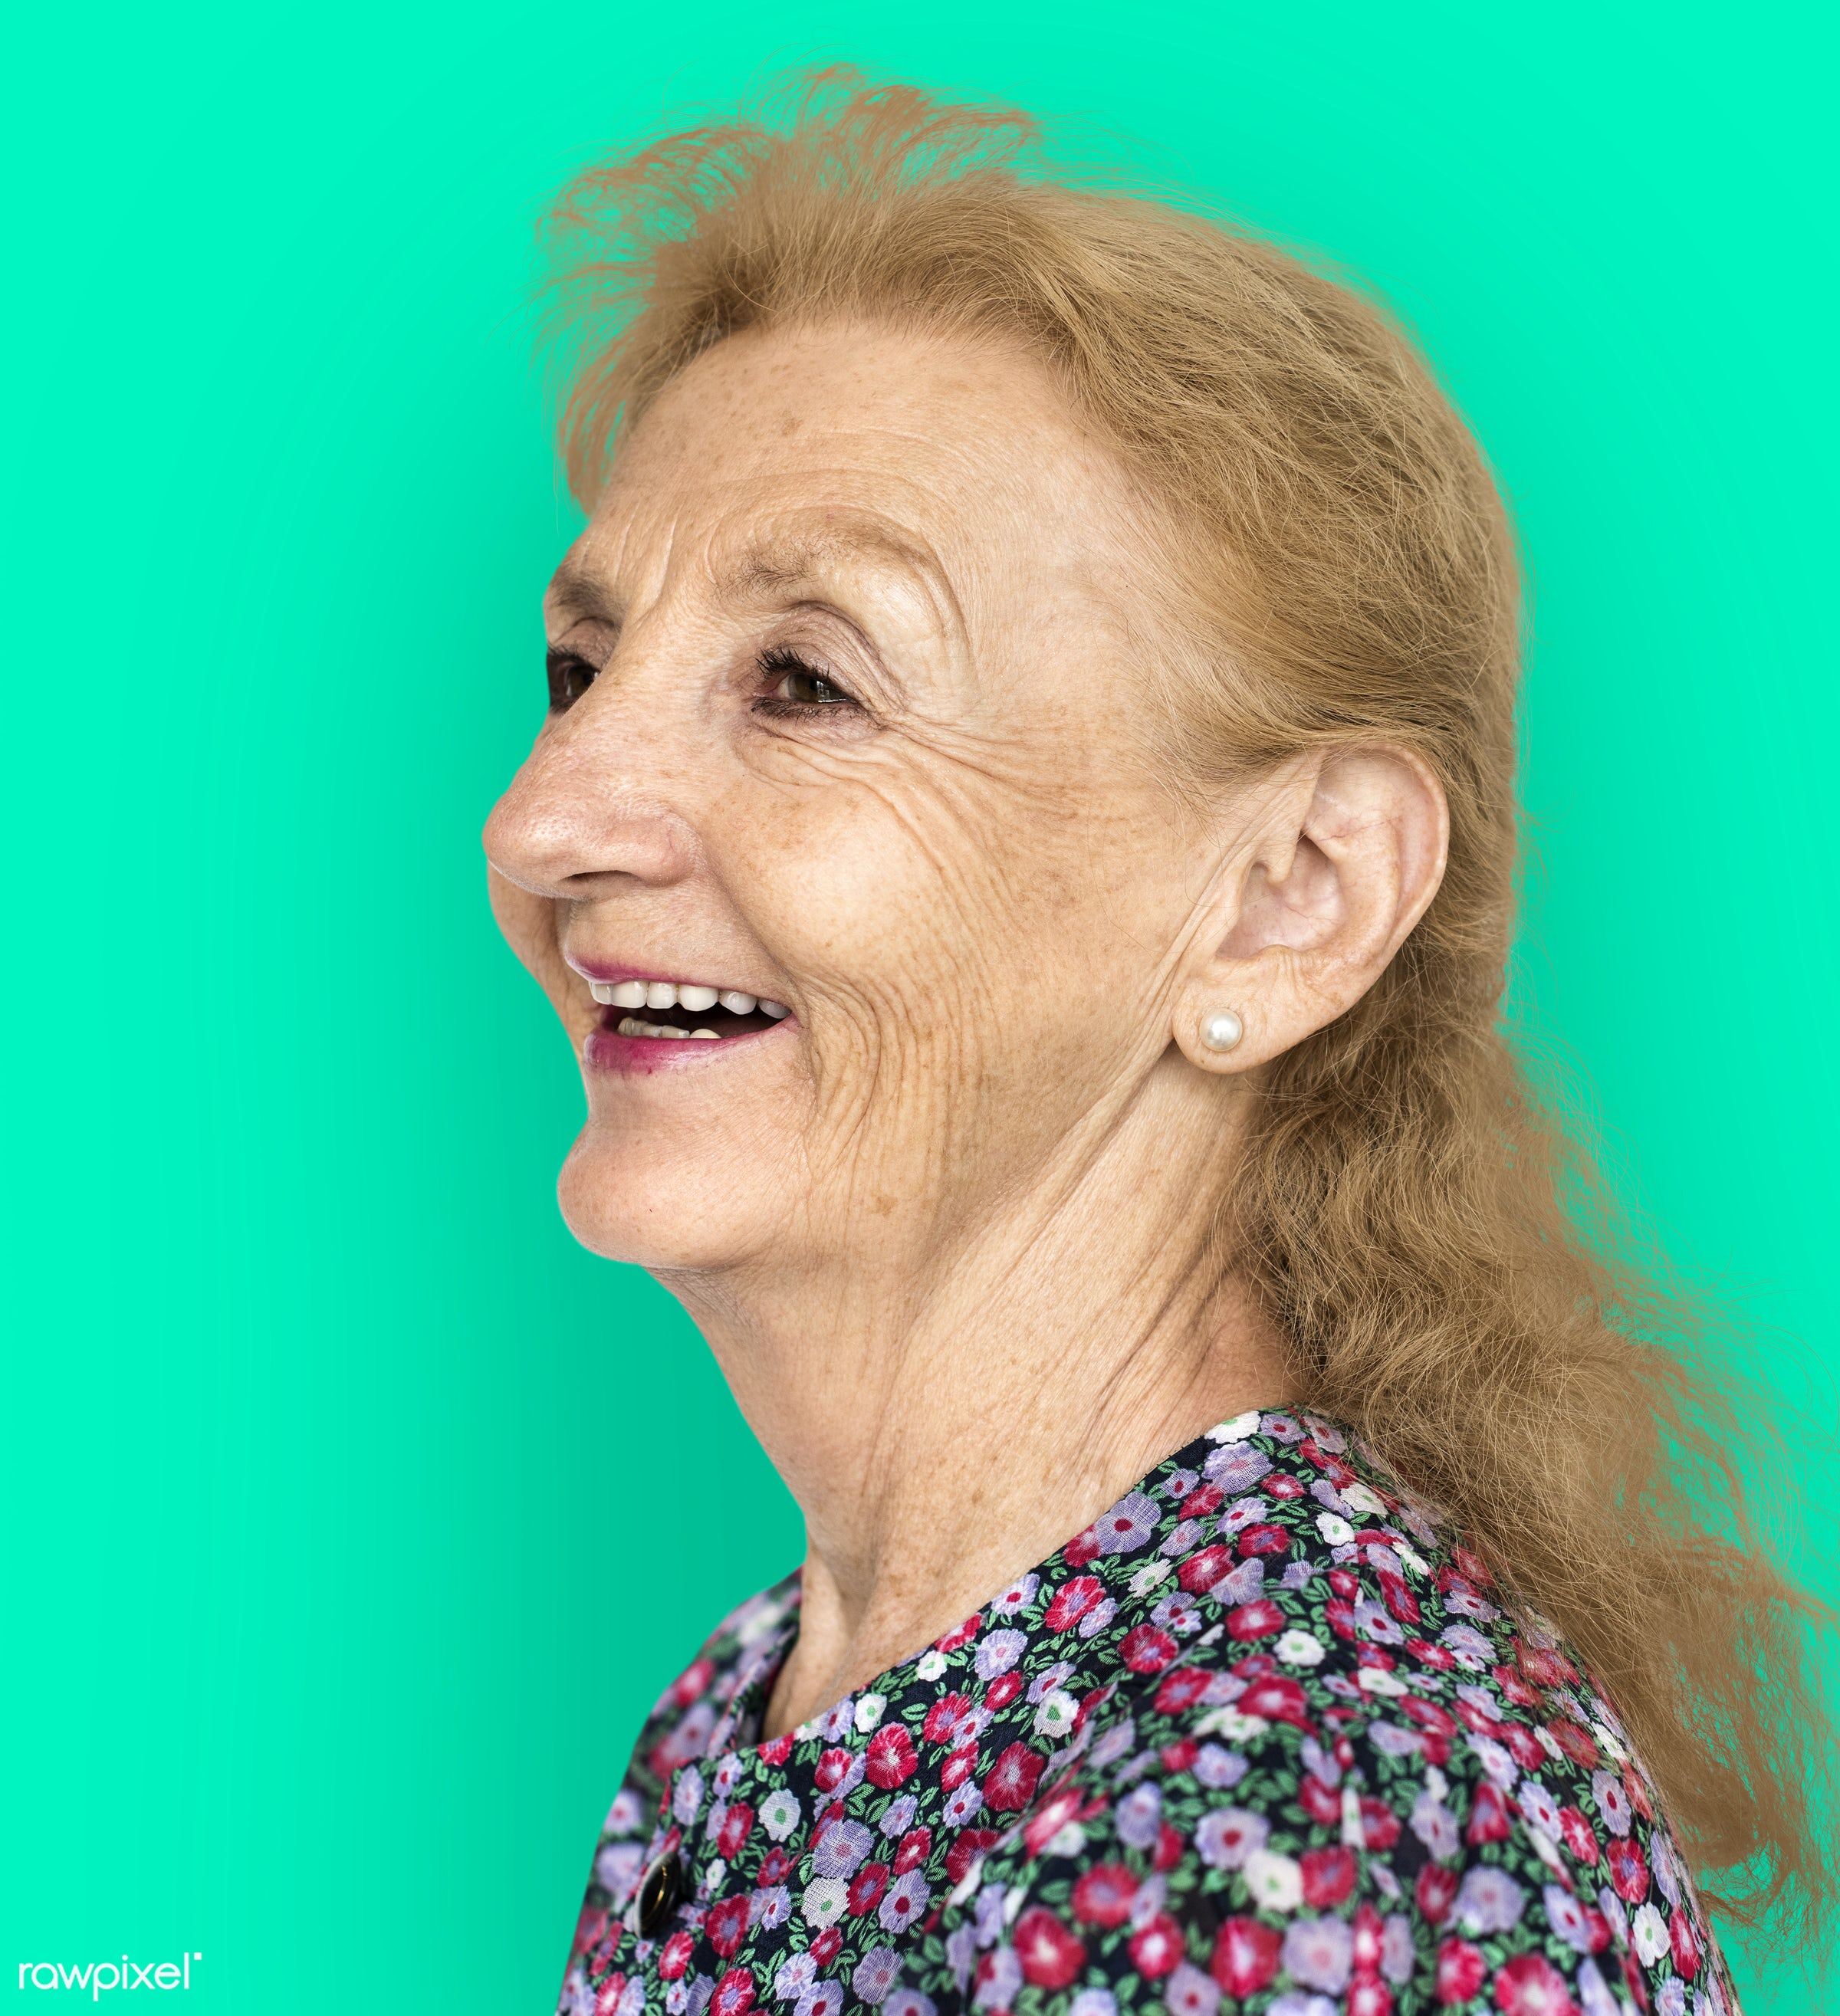 studio, expression, person, freedom, relax, people, caucasian, retirement, woman, lifestyle, westerner, positive, cheerful,...